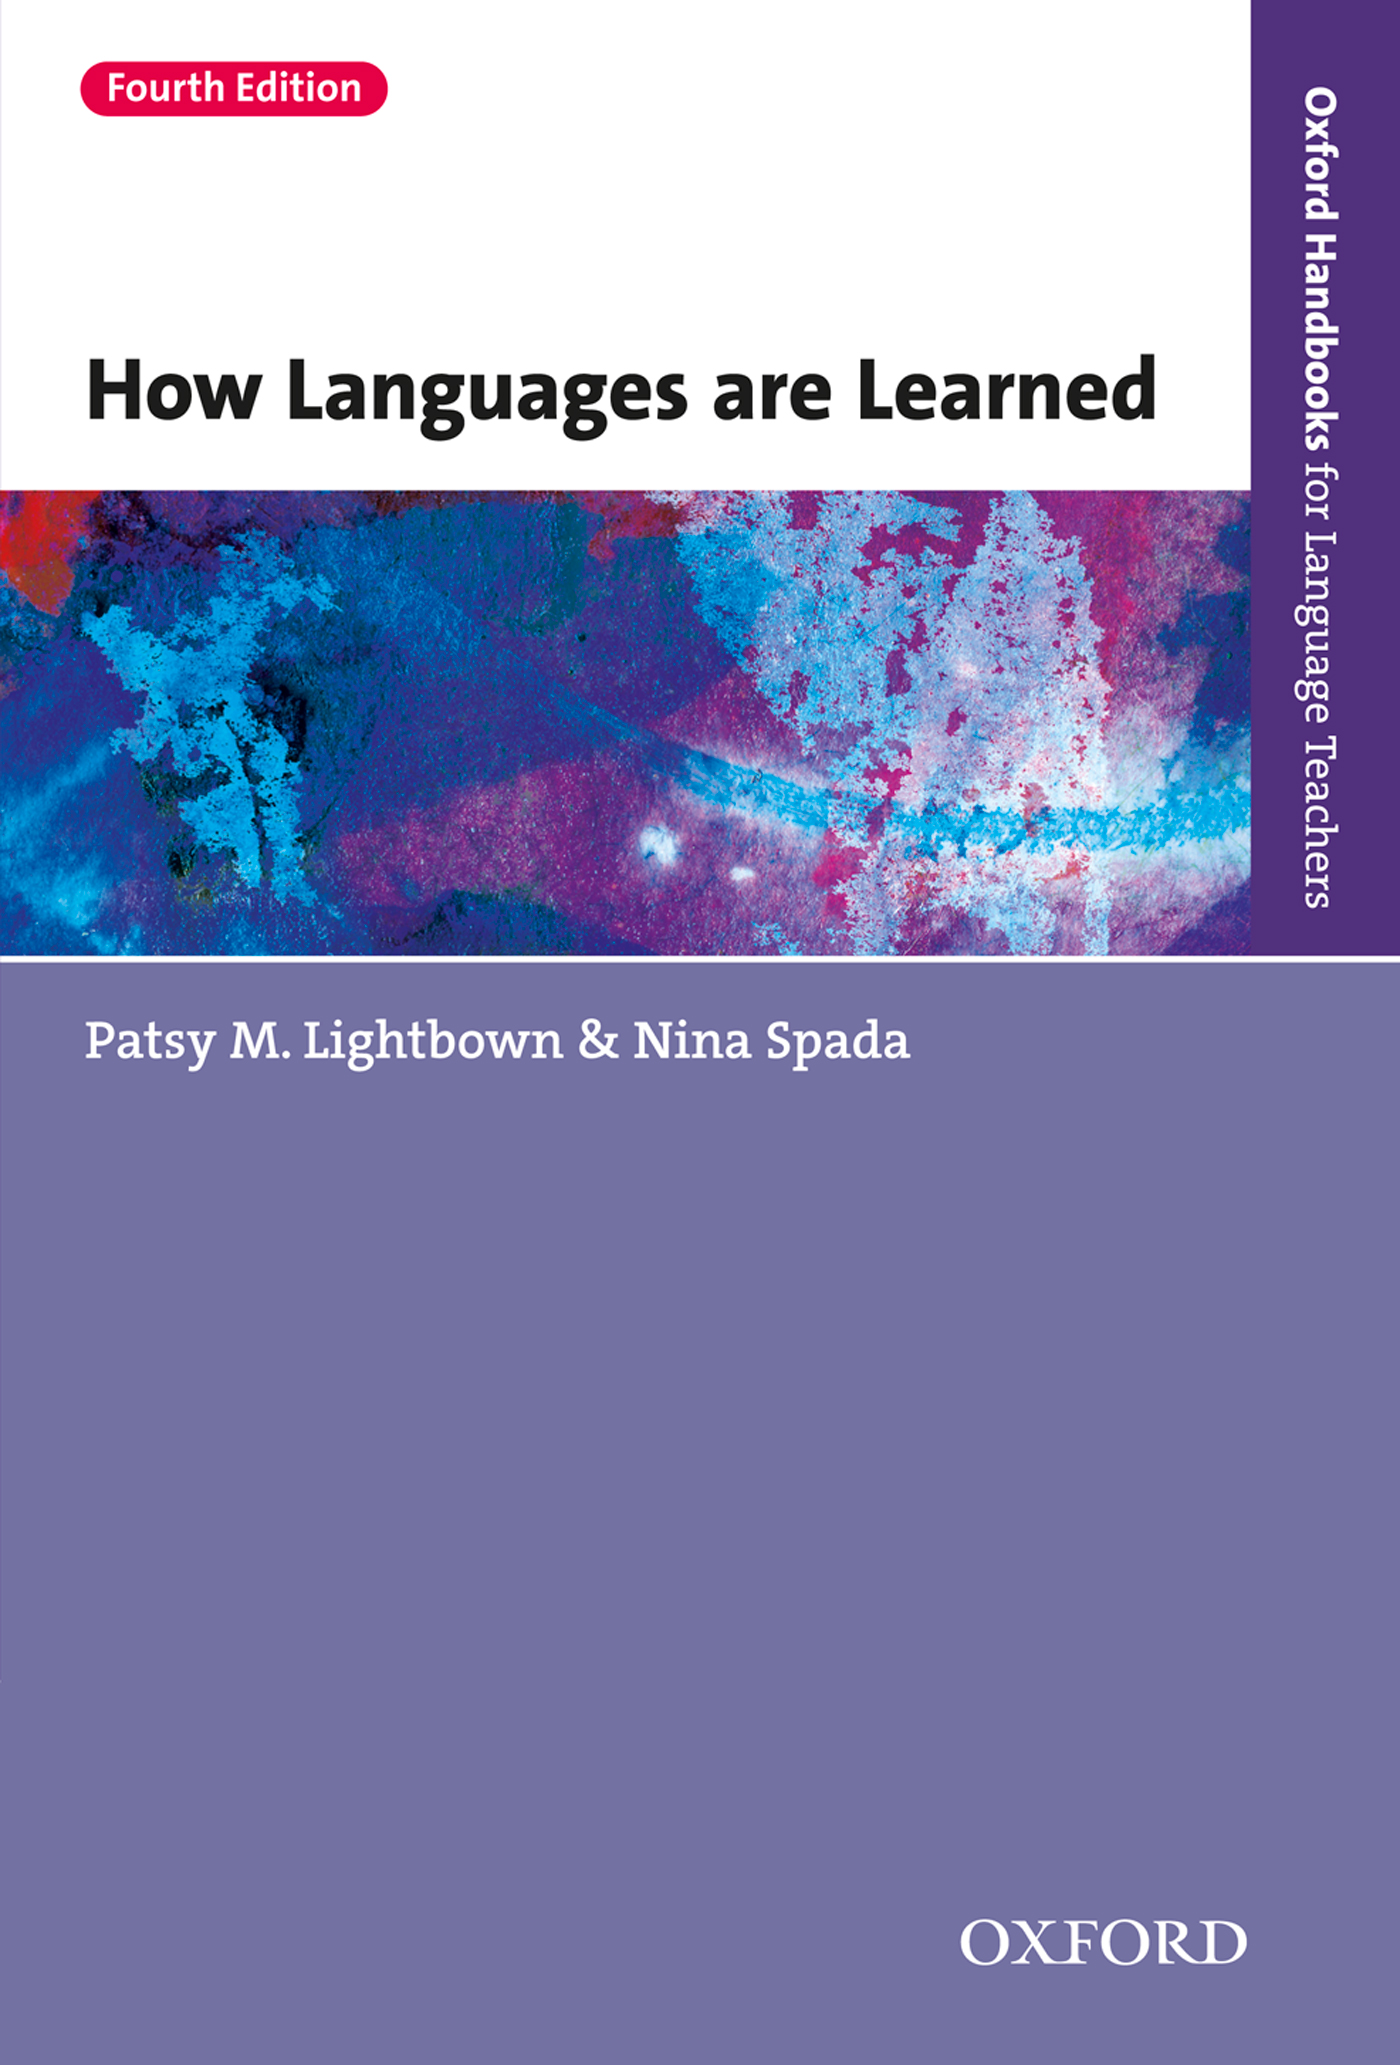 Nina Spada How Languages are Learned 4th edition how to research